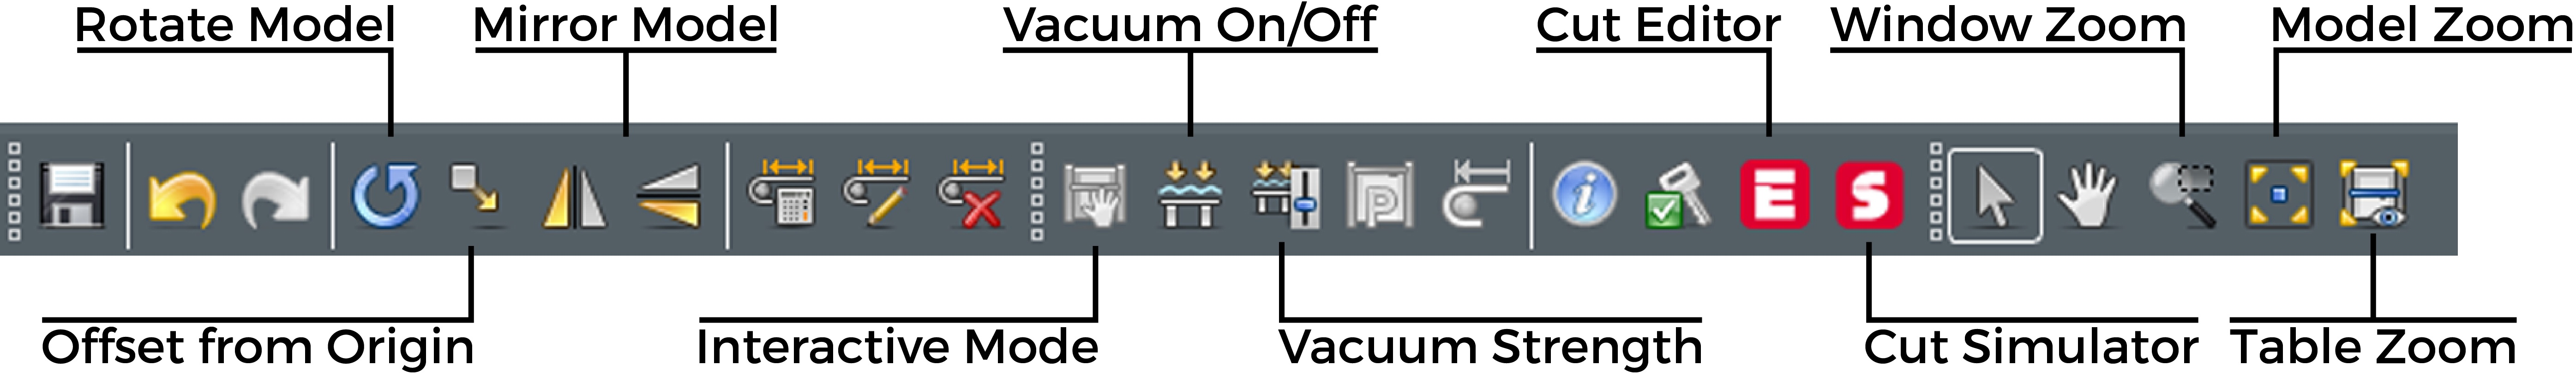 Zund Cutter Tutorial Harvard Gsd Fabrication Lab Wiki Wiring Diagram Hot Wire Foam The Main Icon Toolbar In Cut Center With Most Commonly Used Icons Labeled